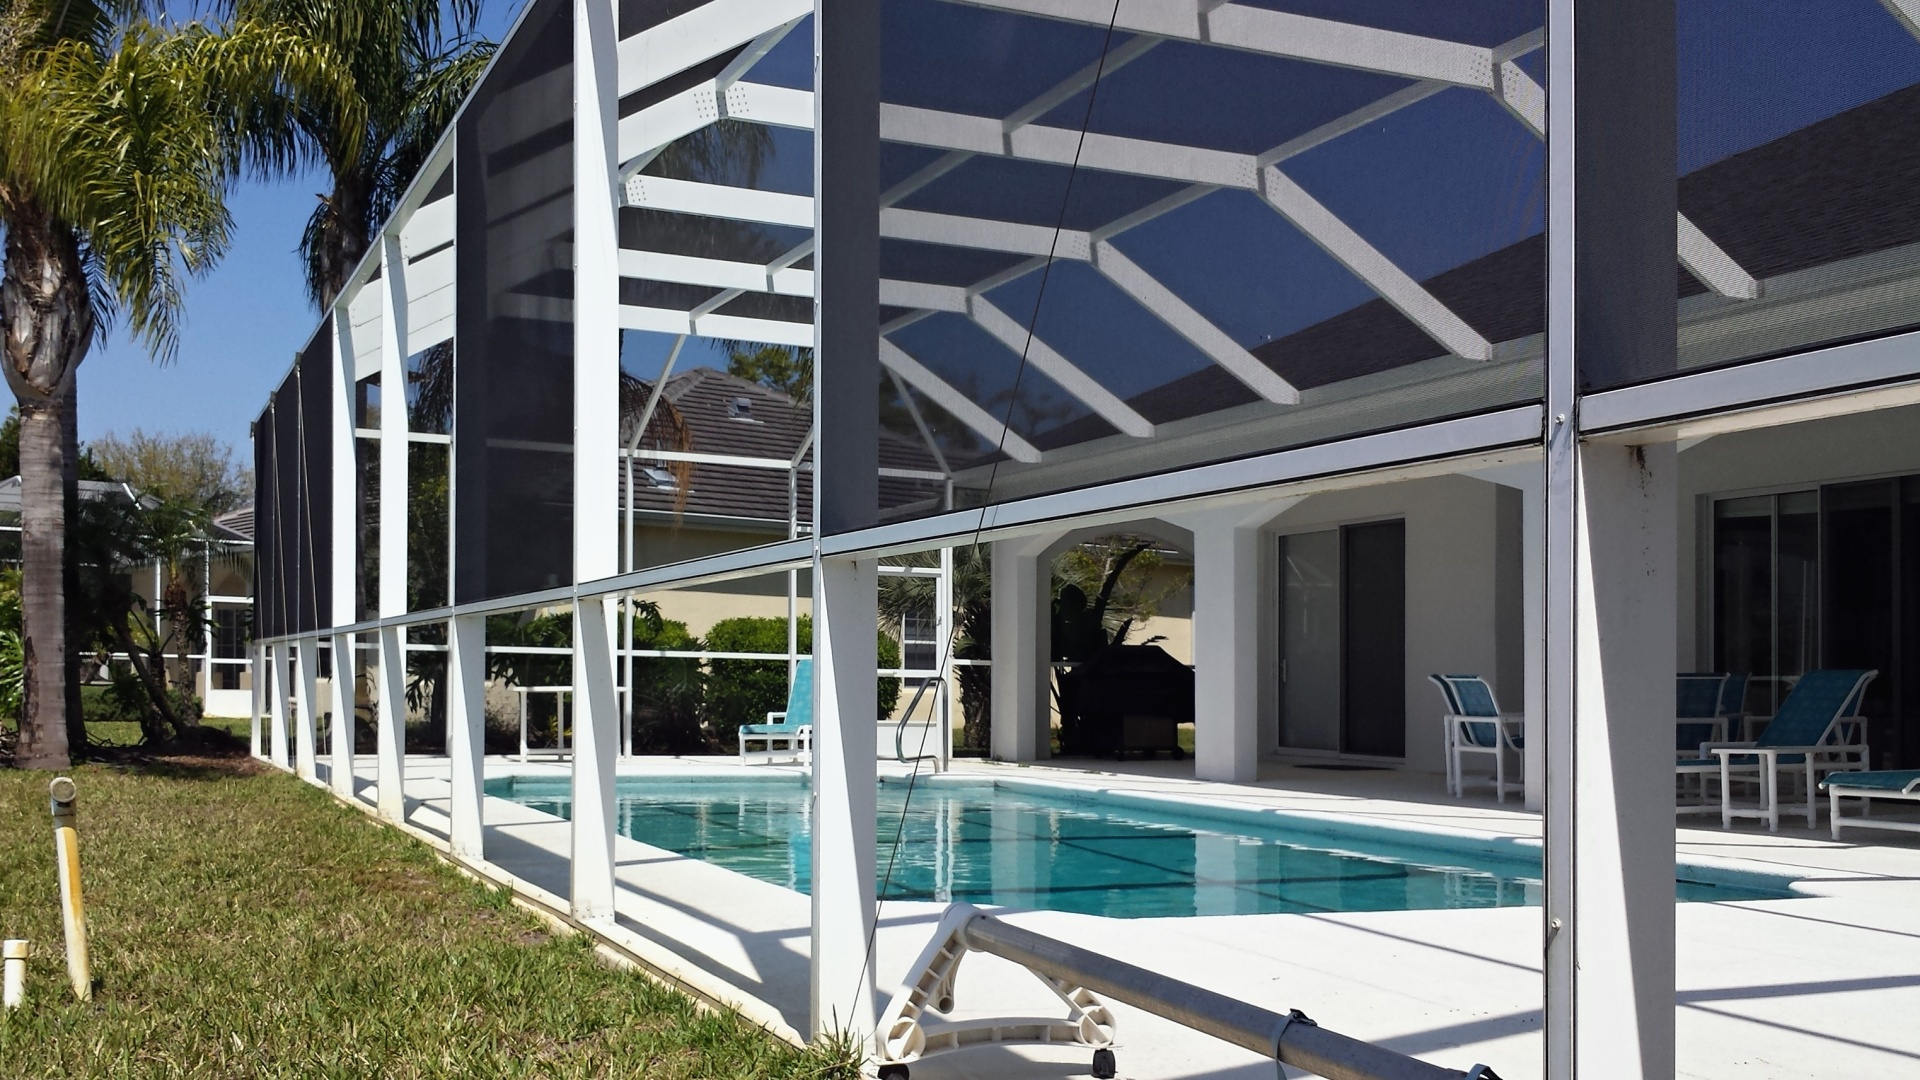 pool-screen-repair-ormond-beach-19-1080p.jpg